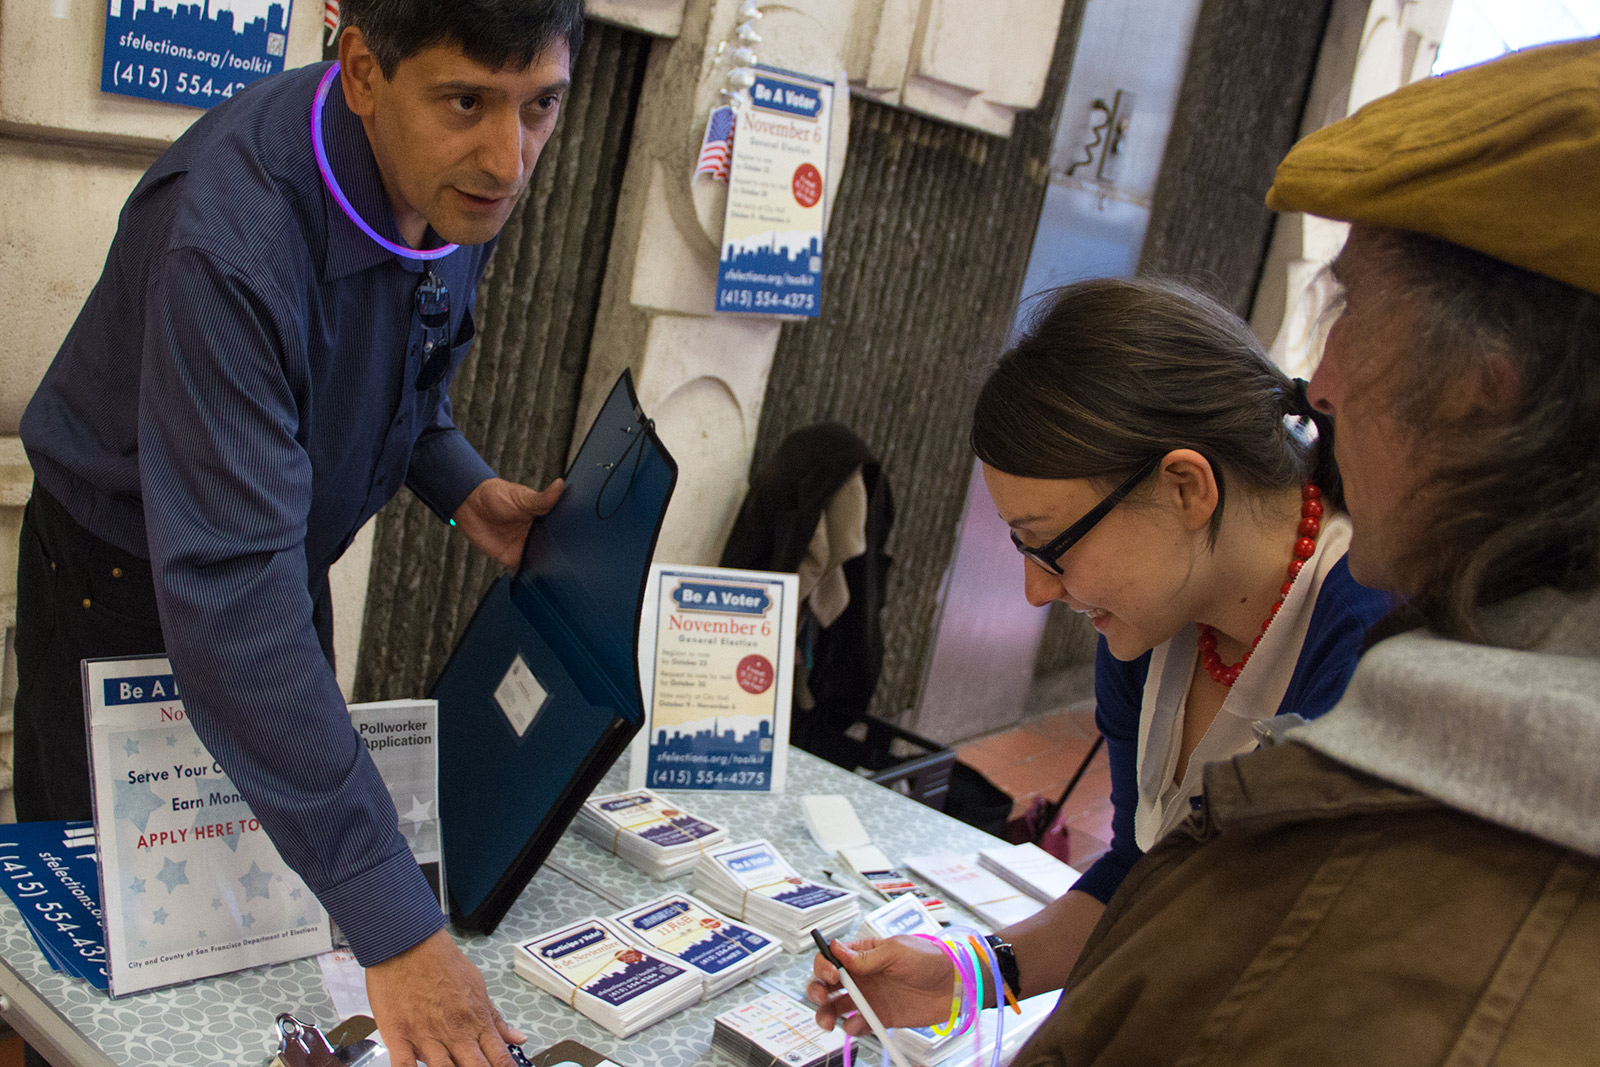 Nestor Cuellas helps city residents complete voter registration forms at the 16th Street Bart Station on Oct. 22, the last day to register to vote in the Nov. 6 General Election.